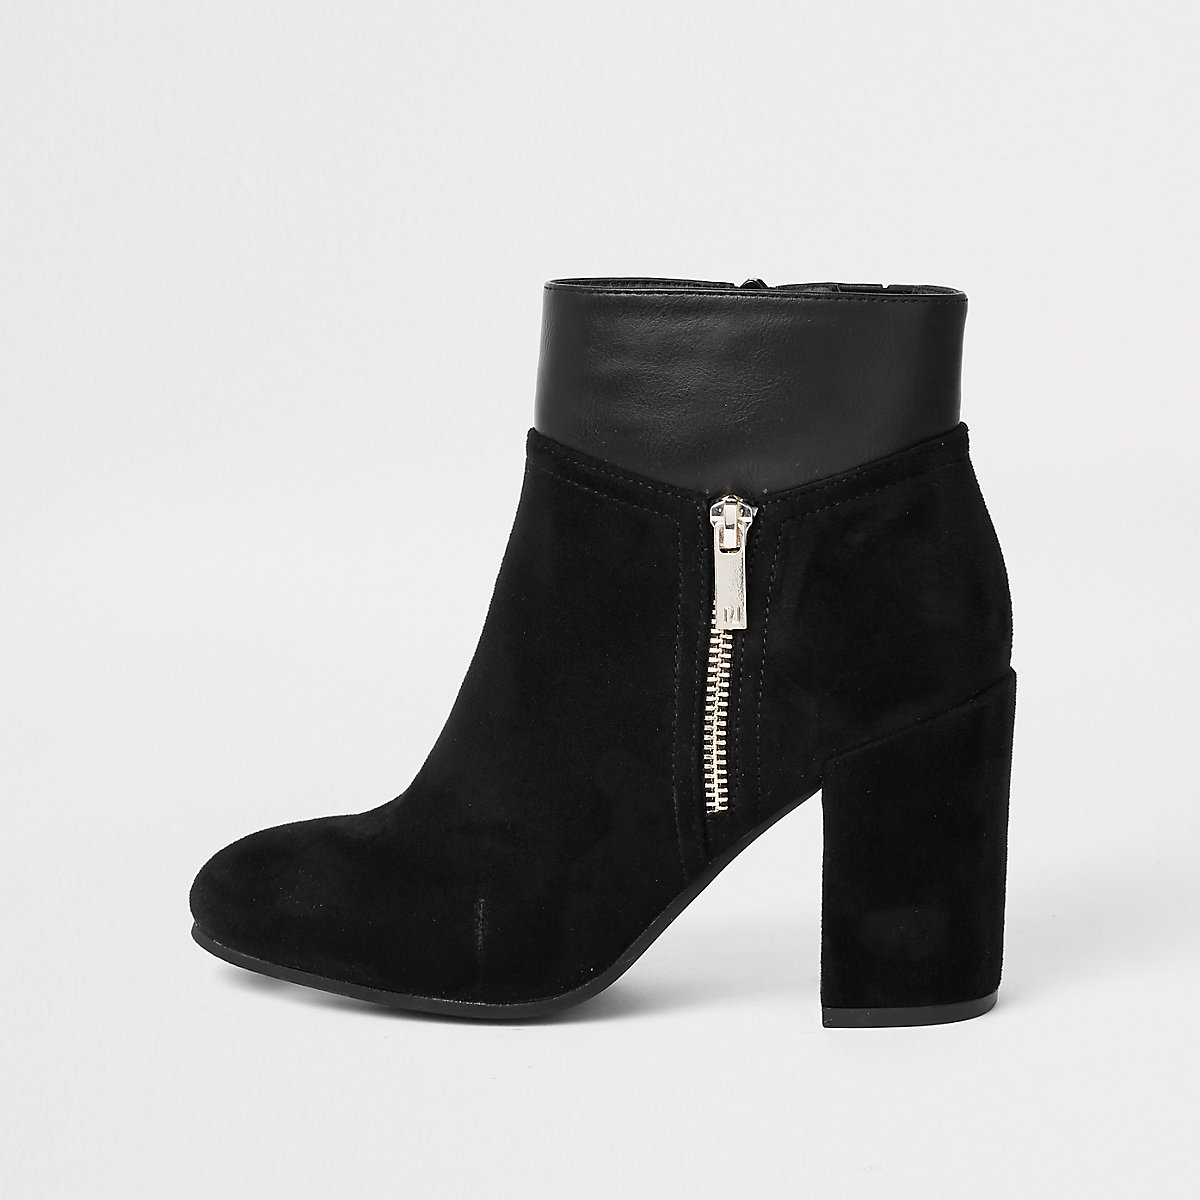 Black block heel boot